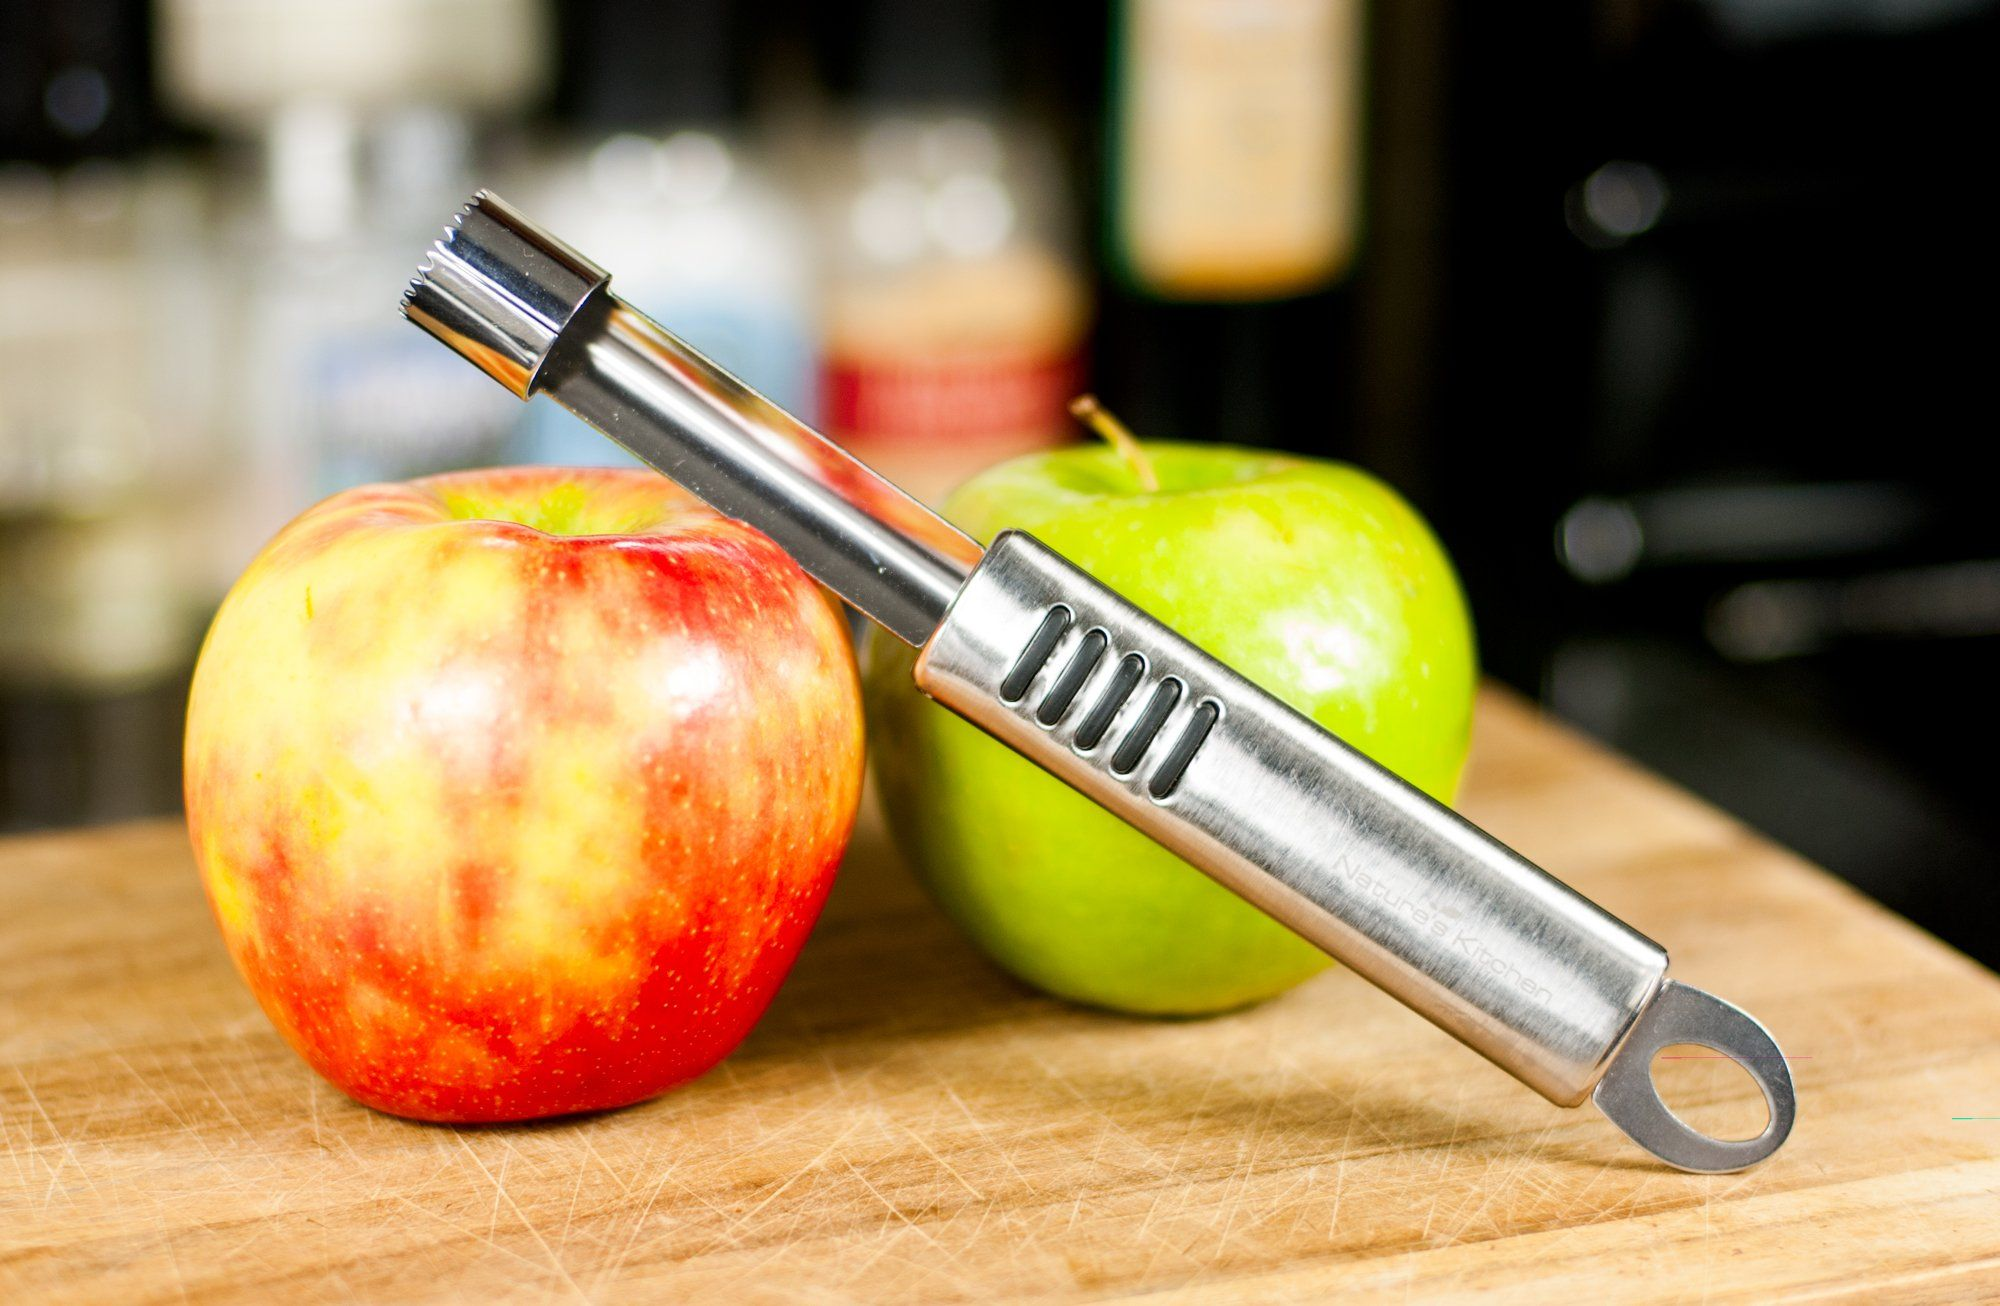 Apple corer by natures kitchen commercial